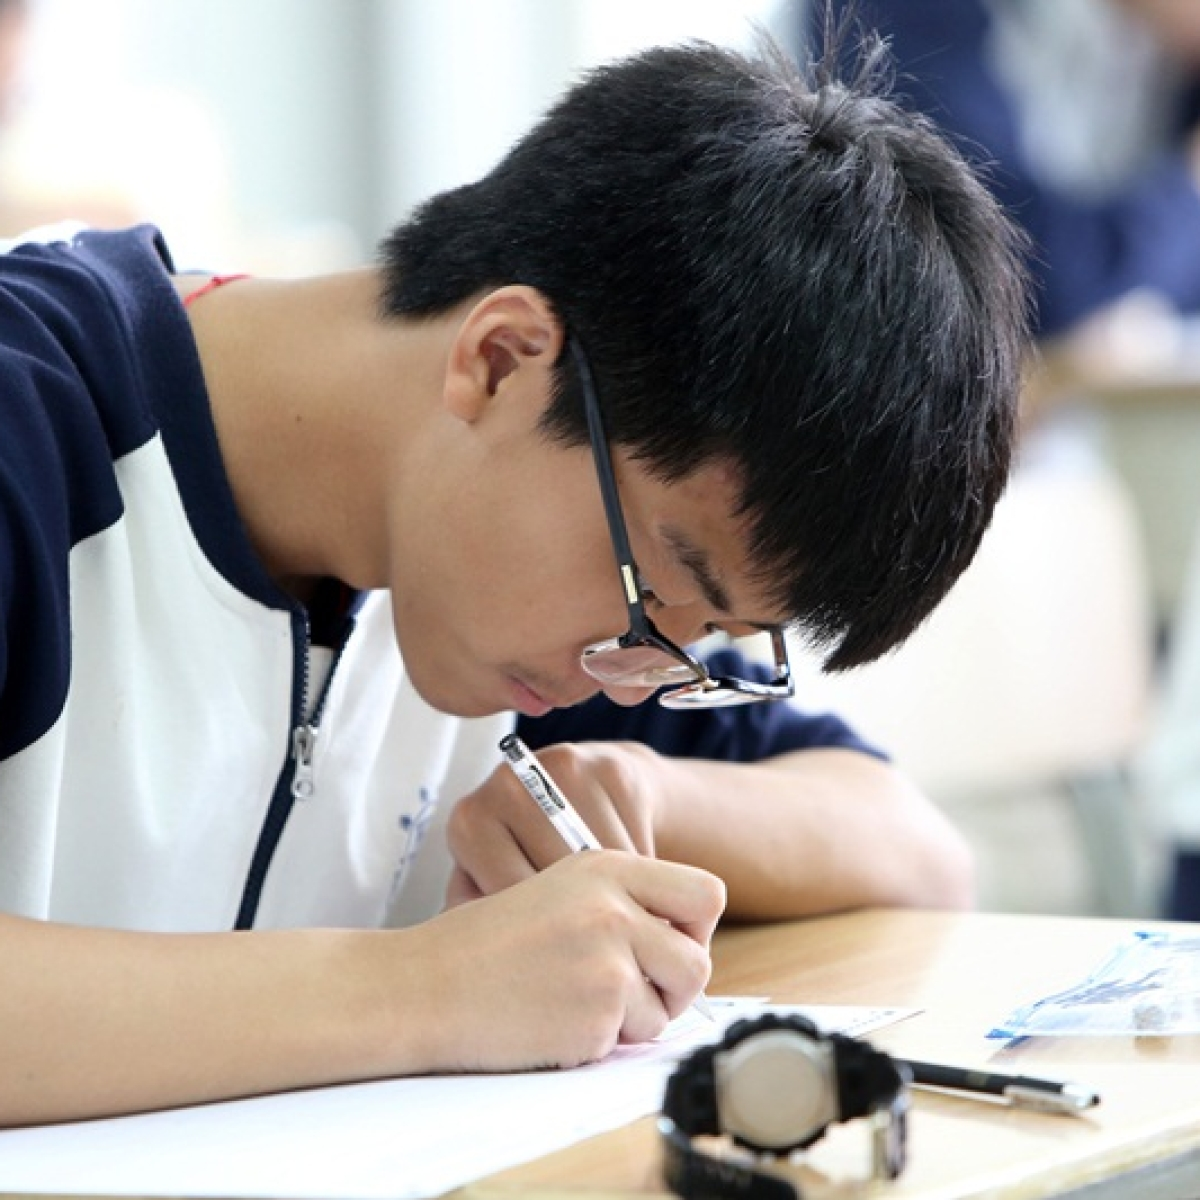 Degree colleges to start new academic year via 'blended learning'